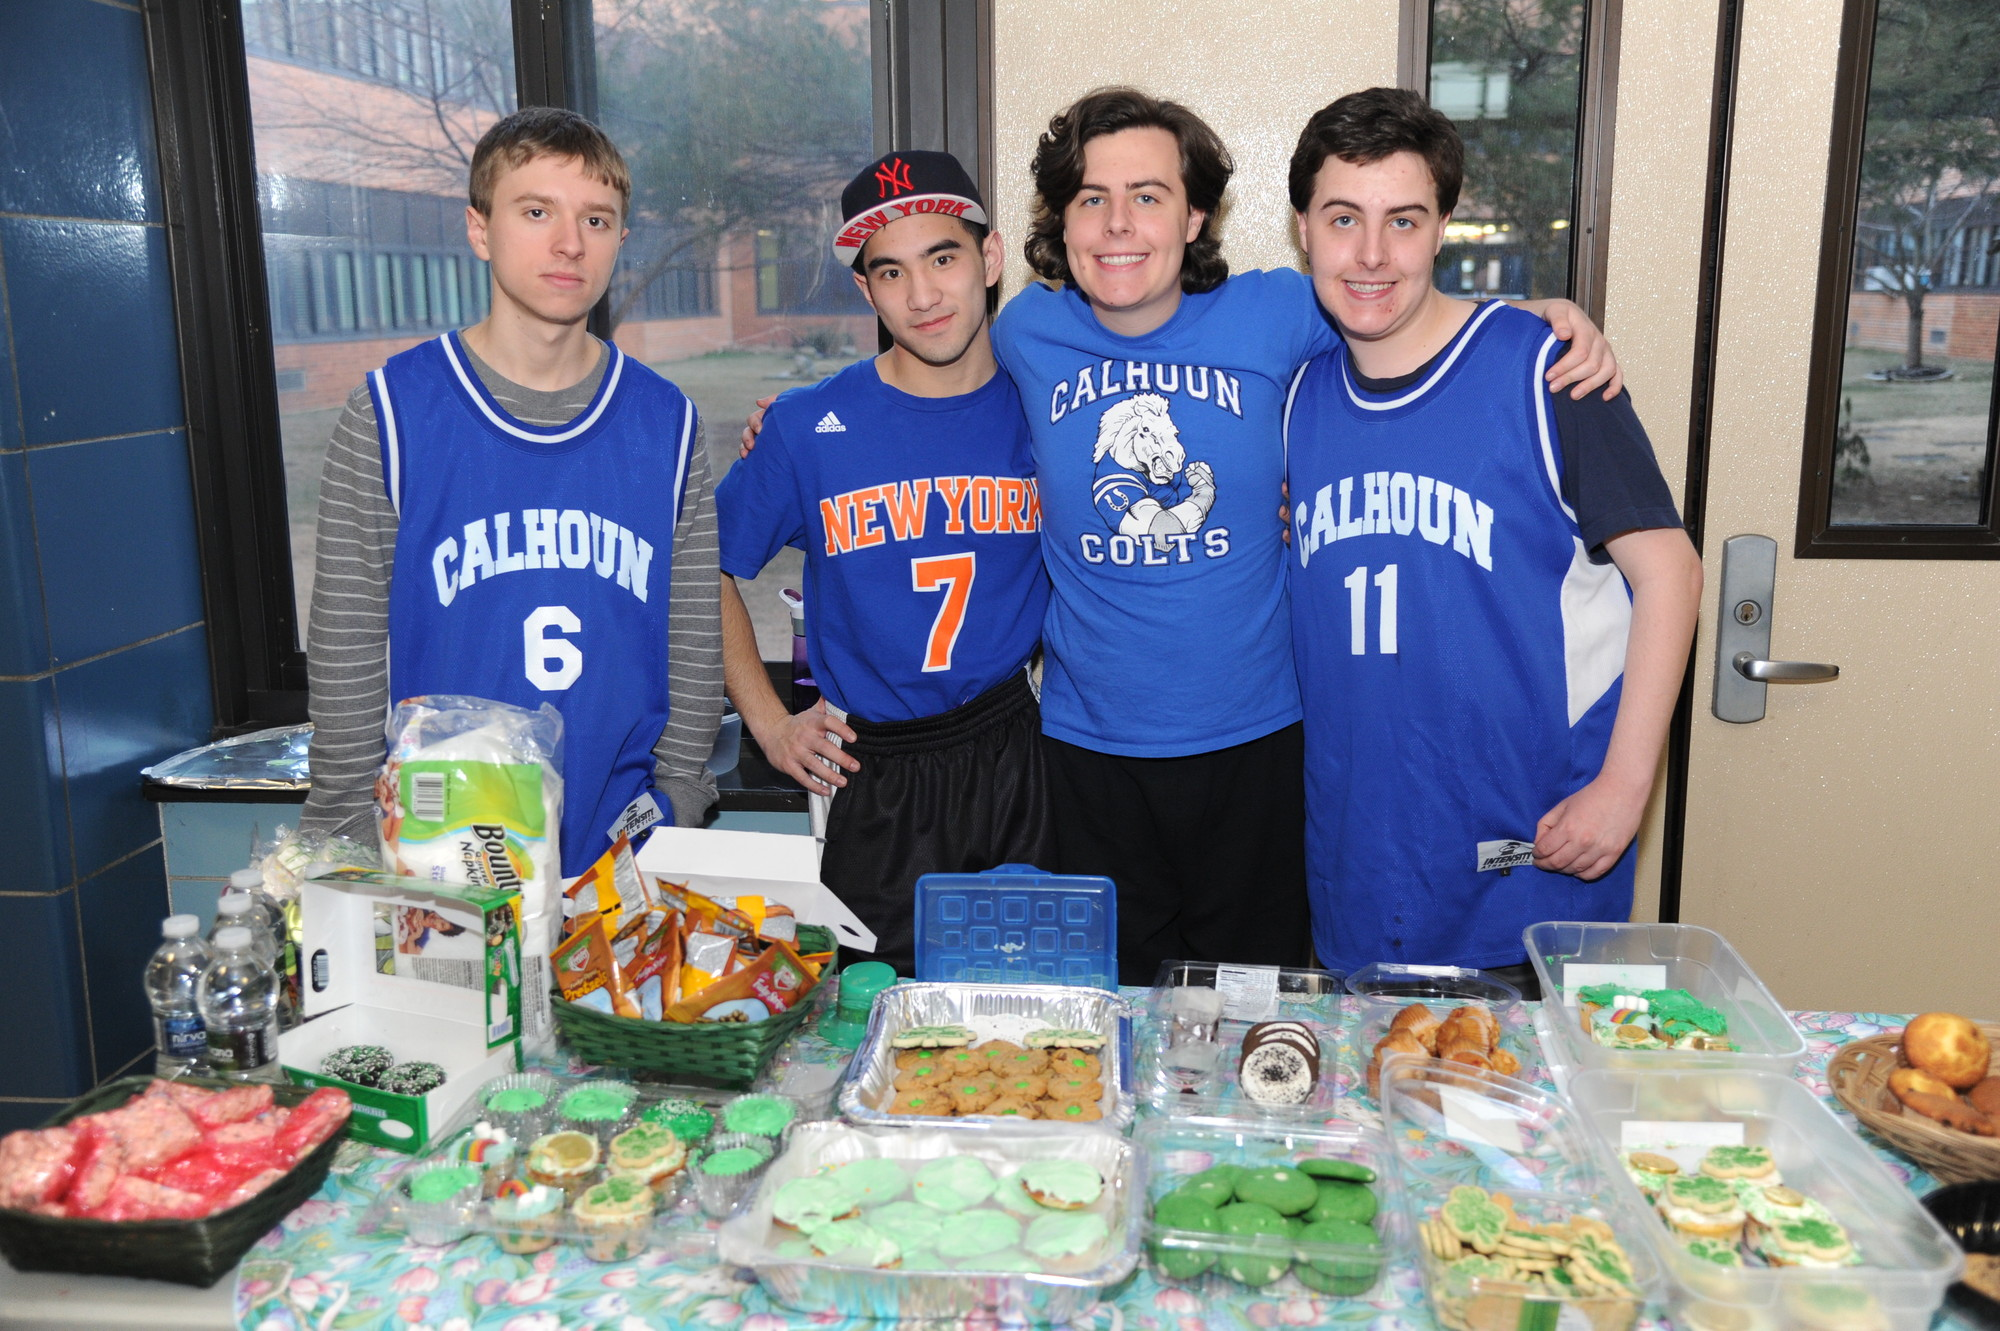 Justin Koehler, 18, Derek Ha, 21, and twins Scott and Brett Weisbrot, 16, ran the fundraiser's bake sale table.